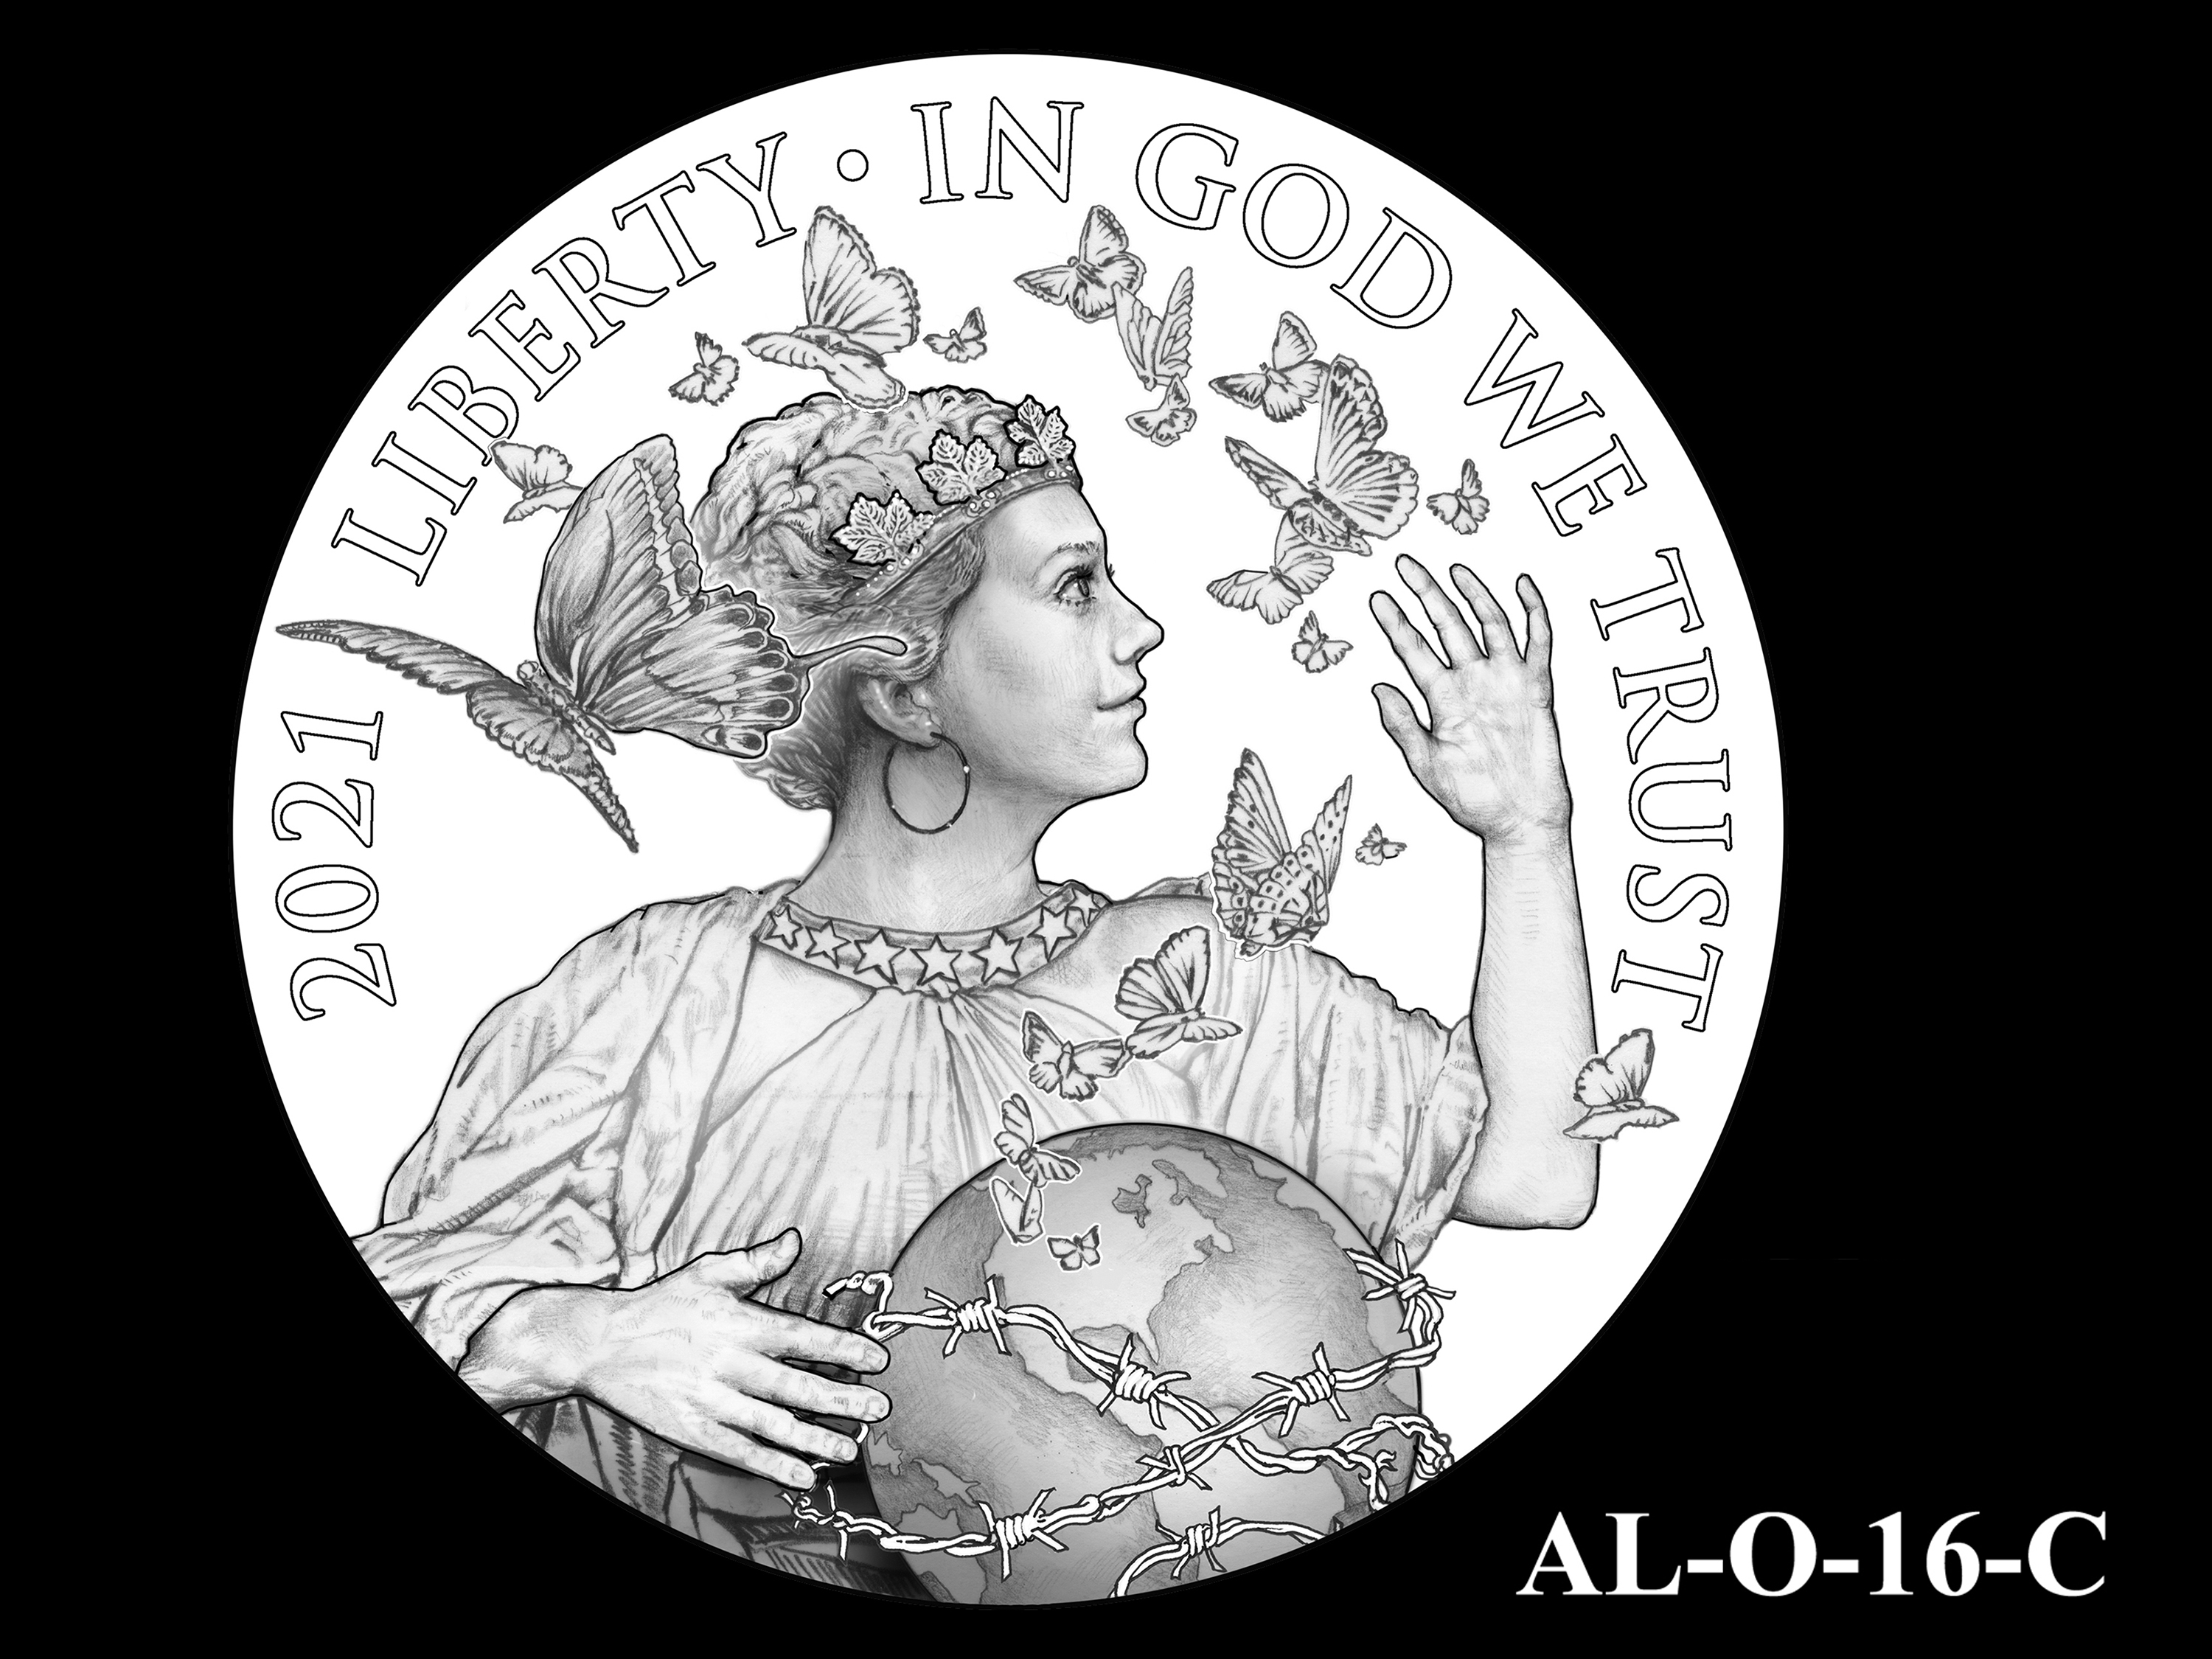 AL-O-16-C -- 2021 American Liberty Gold Coin and Silver Medal Program - Obverse